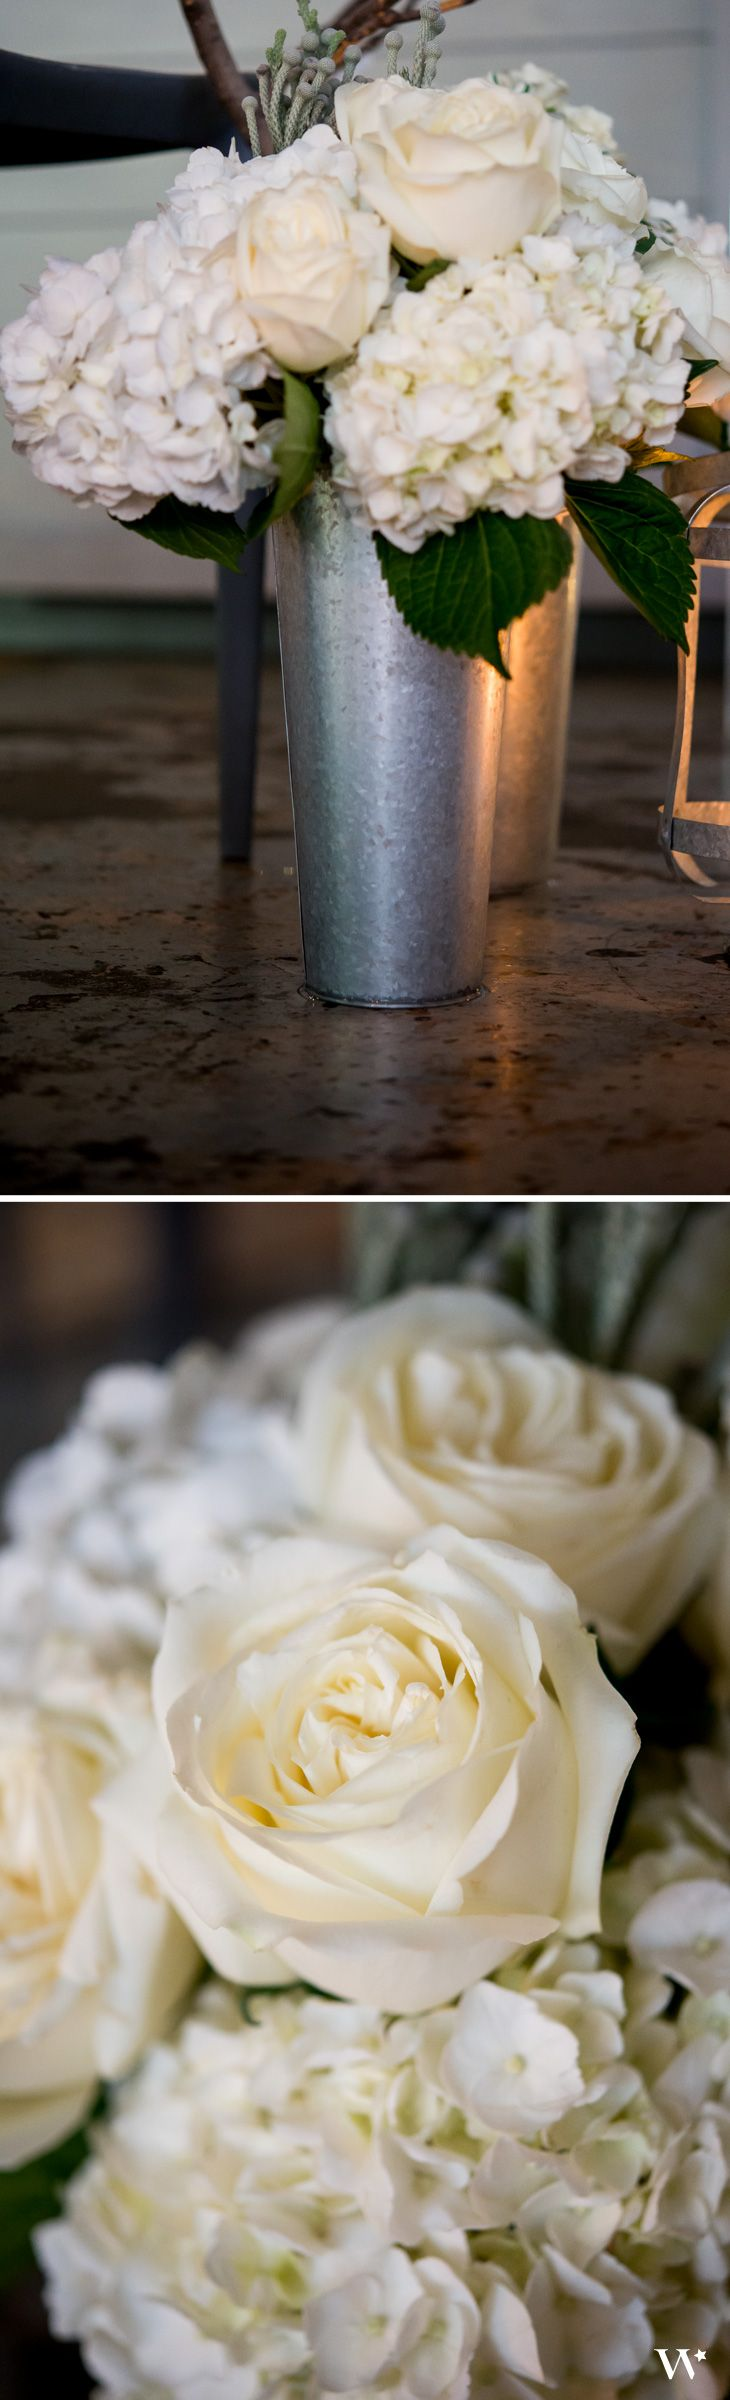 Galvanized Tin buckets are so versatile when it comes to wedding décor. Create an unforgettable look with your Industrial Glam Wedding theme!